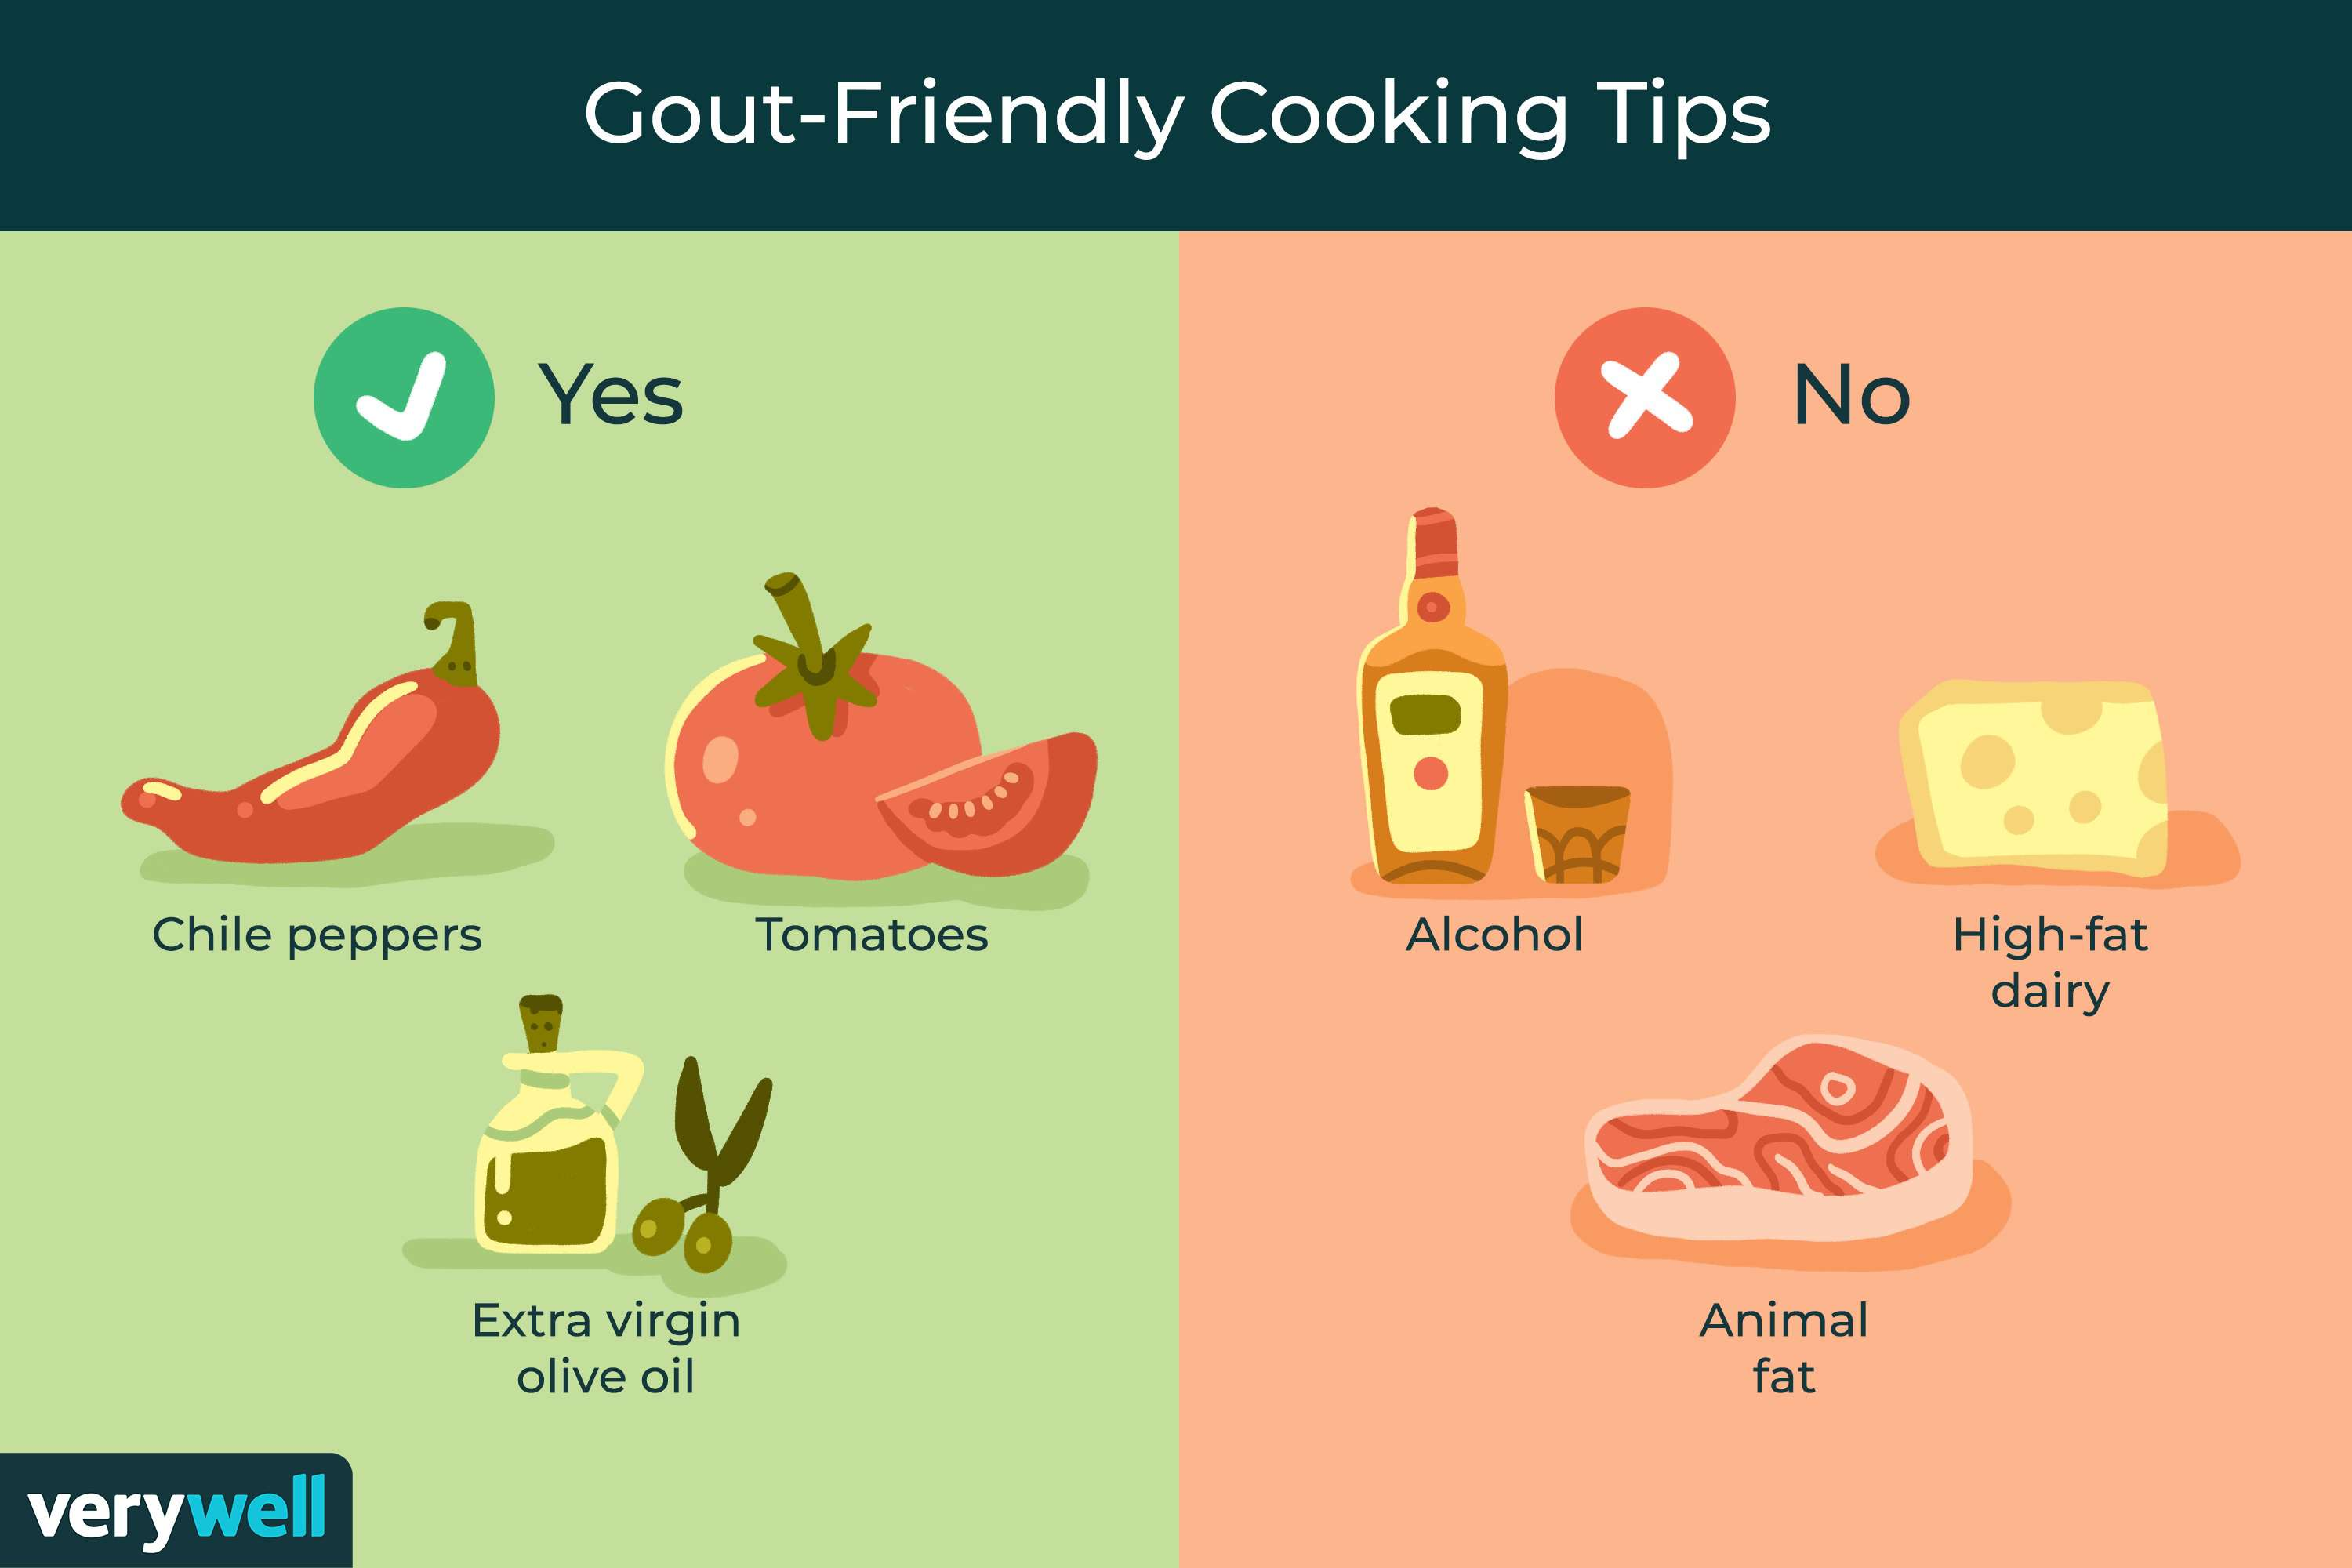 Gout-Friendly Cooking Tips